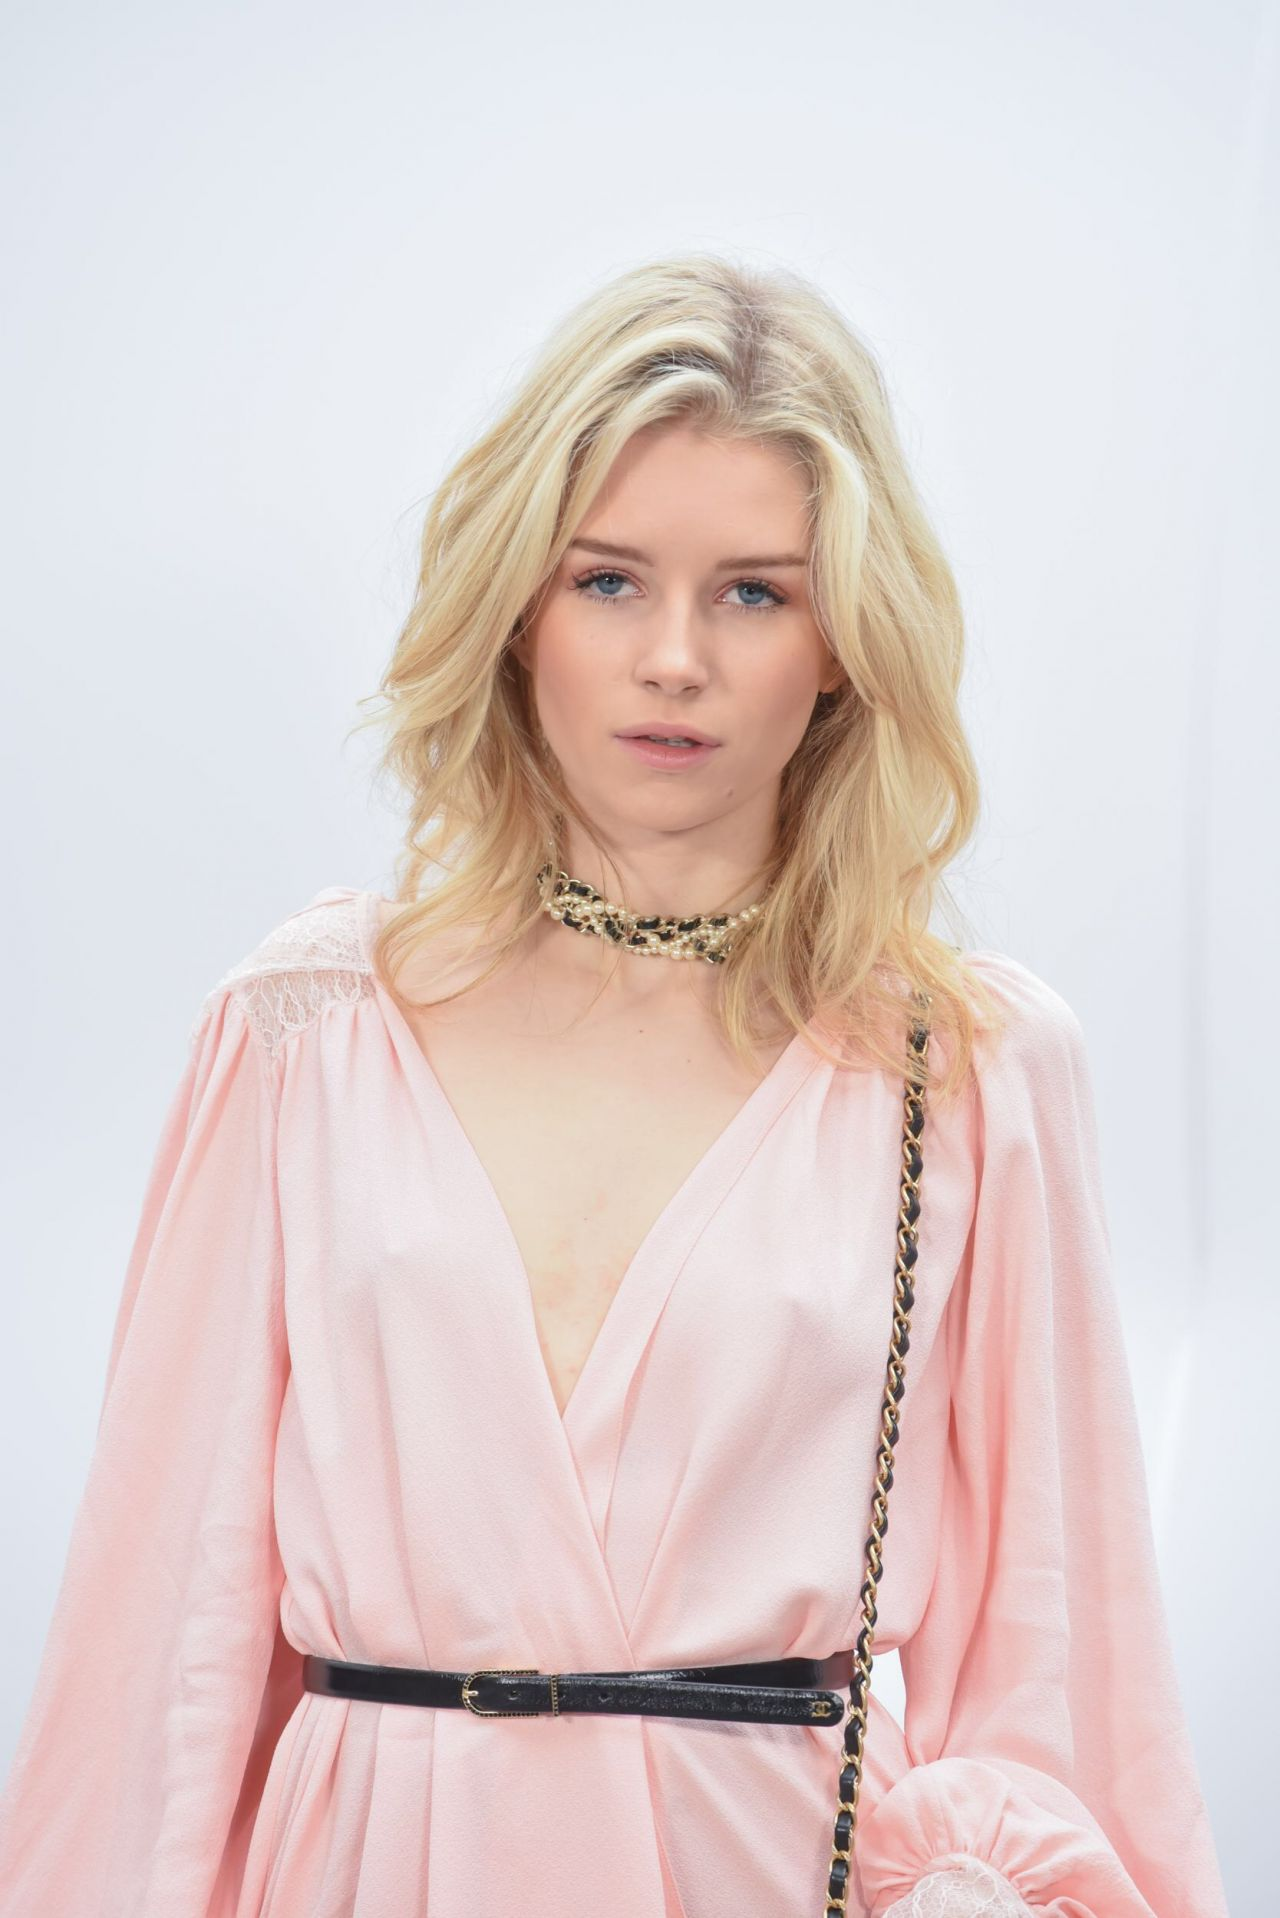 Lottie Moss Arriving To The Chanel Autumn Winter 2017